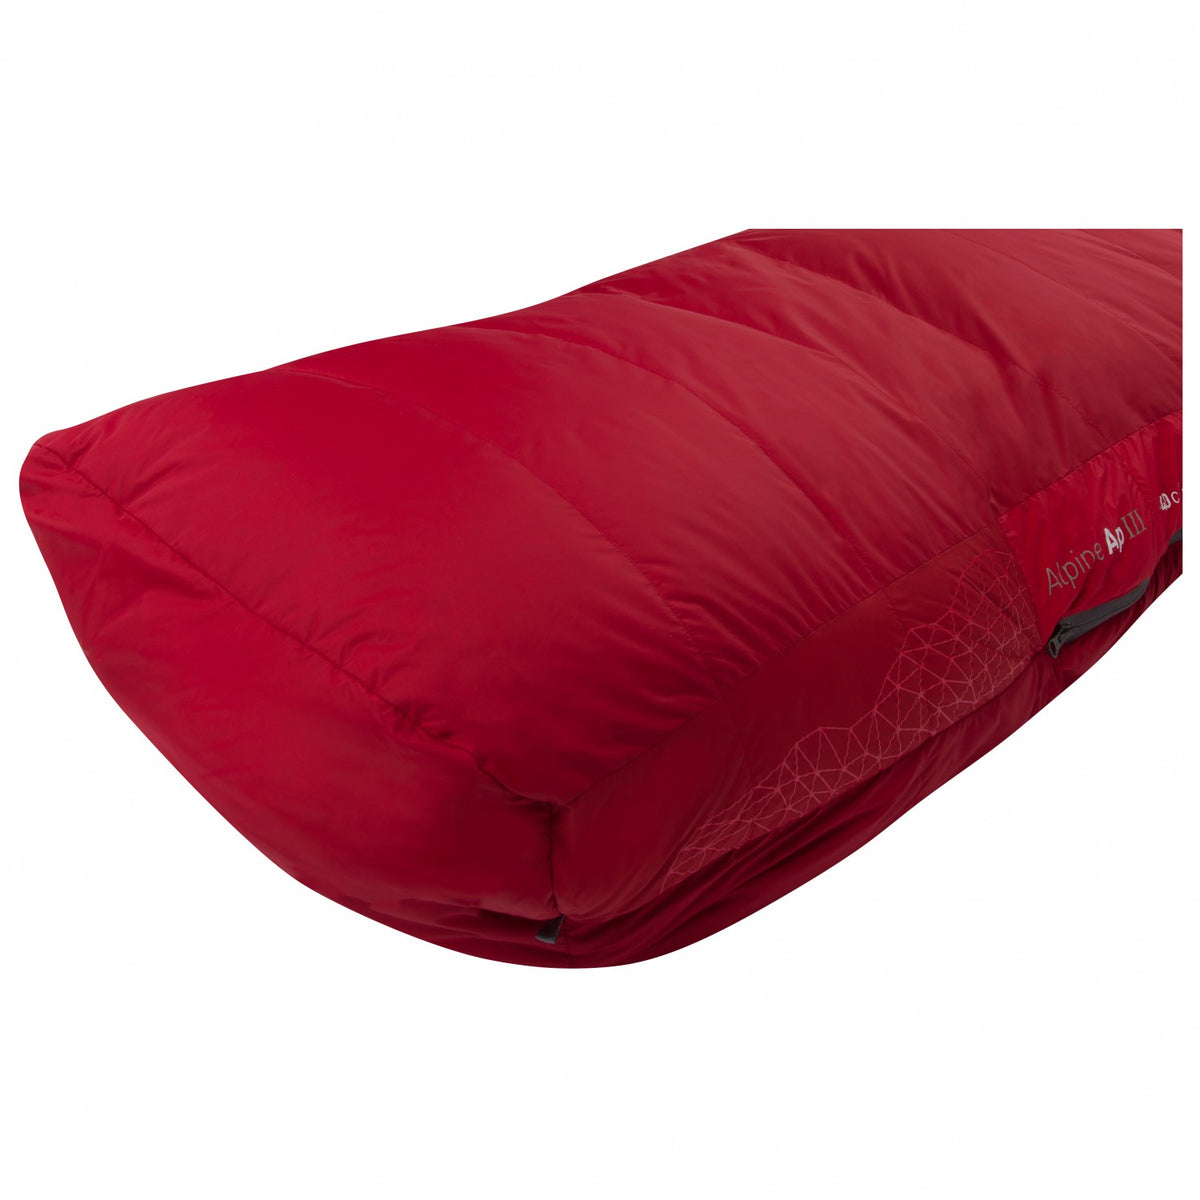 Sea to Summit Alpine III sleeping bag showing the bottom foot bed